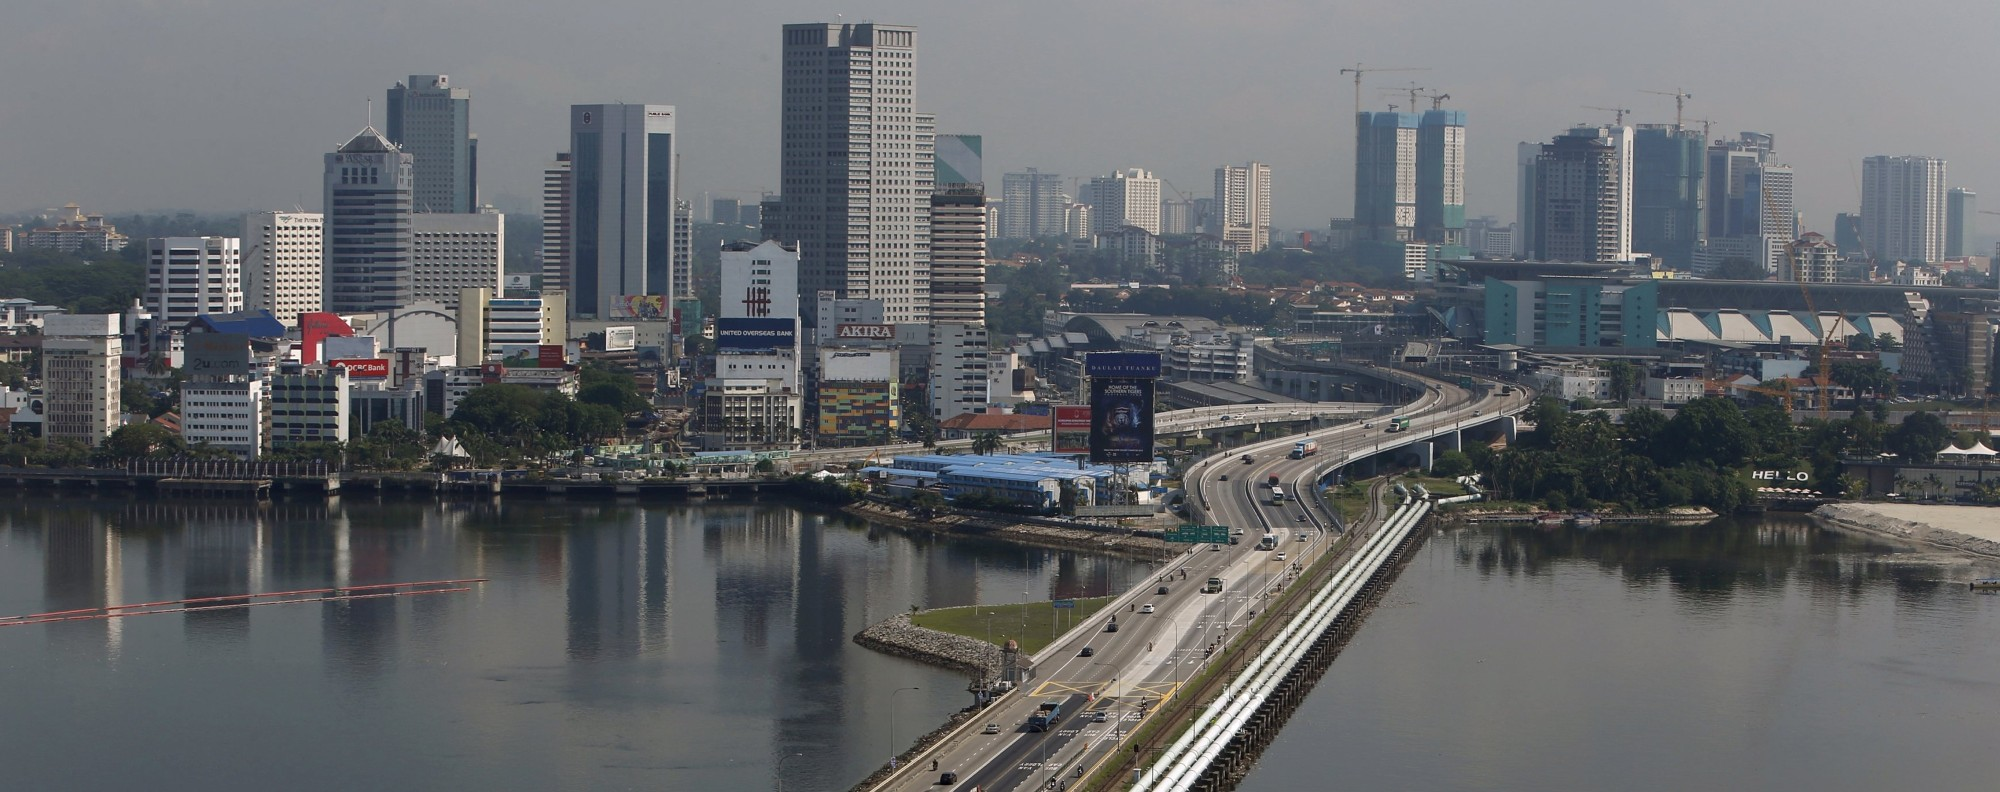 The causeway between Singapore and Malaysia. Photo: Reuters